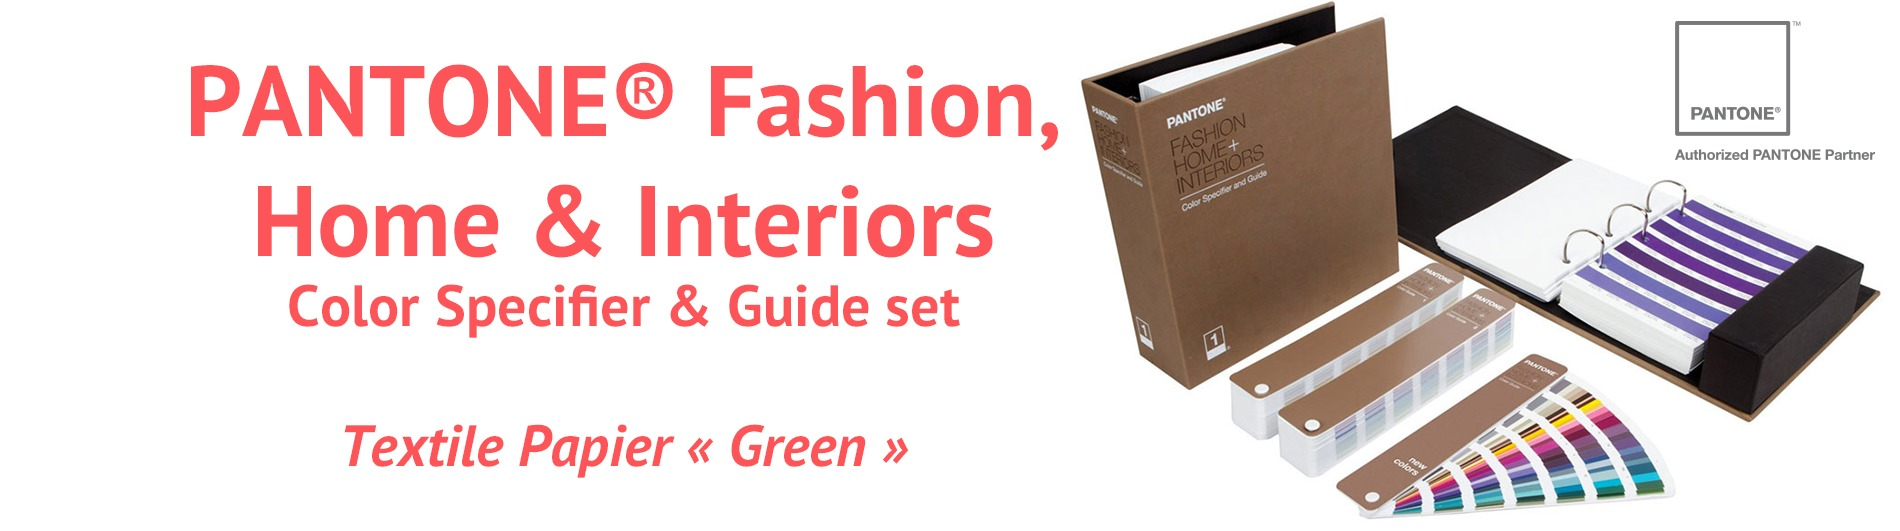 PANTONE® Fashion, Home + Interiors TPG Color Specifier & Guide set